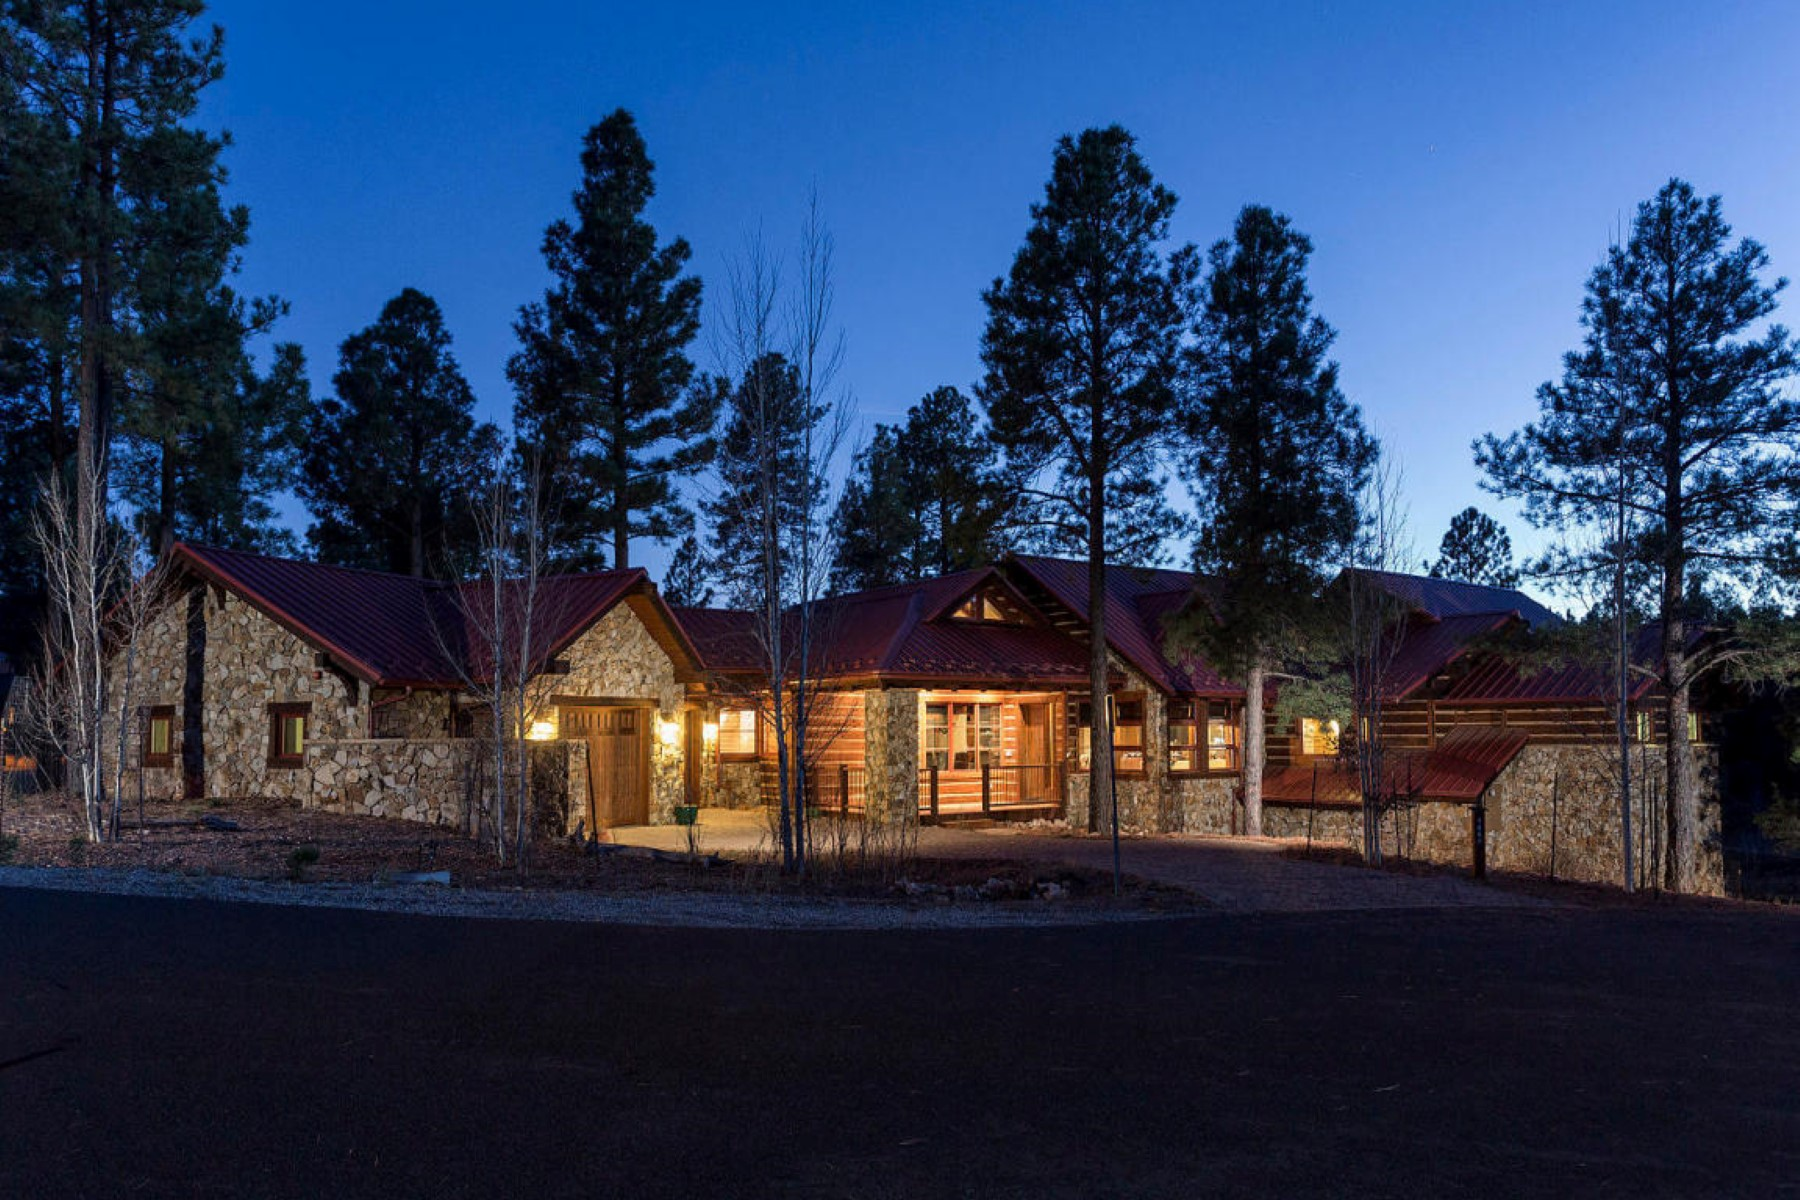 Single Family Home for Sale at Incredible Luxury Mountain Home On a Prime Cul-de-Sac in Exclusive Pine Canyon 1887 E Marengo Court Flagstaff, Arizona, 86005 United States